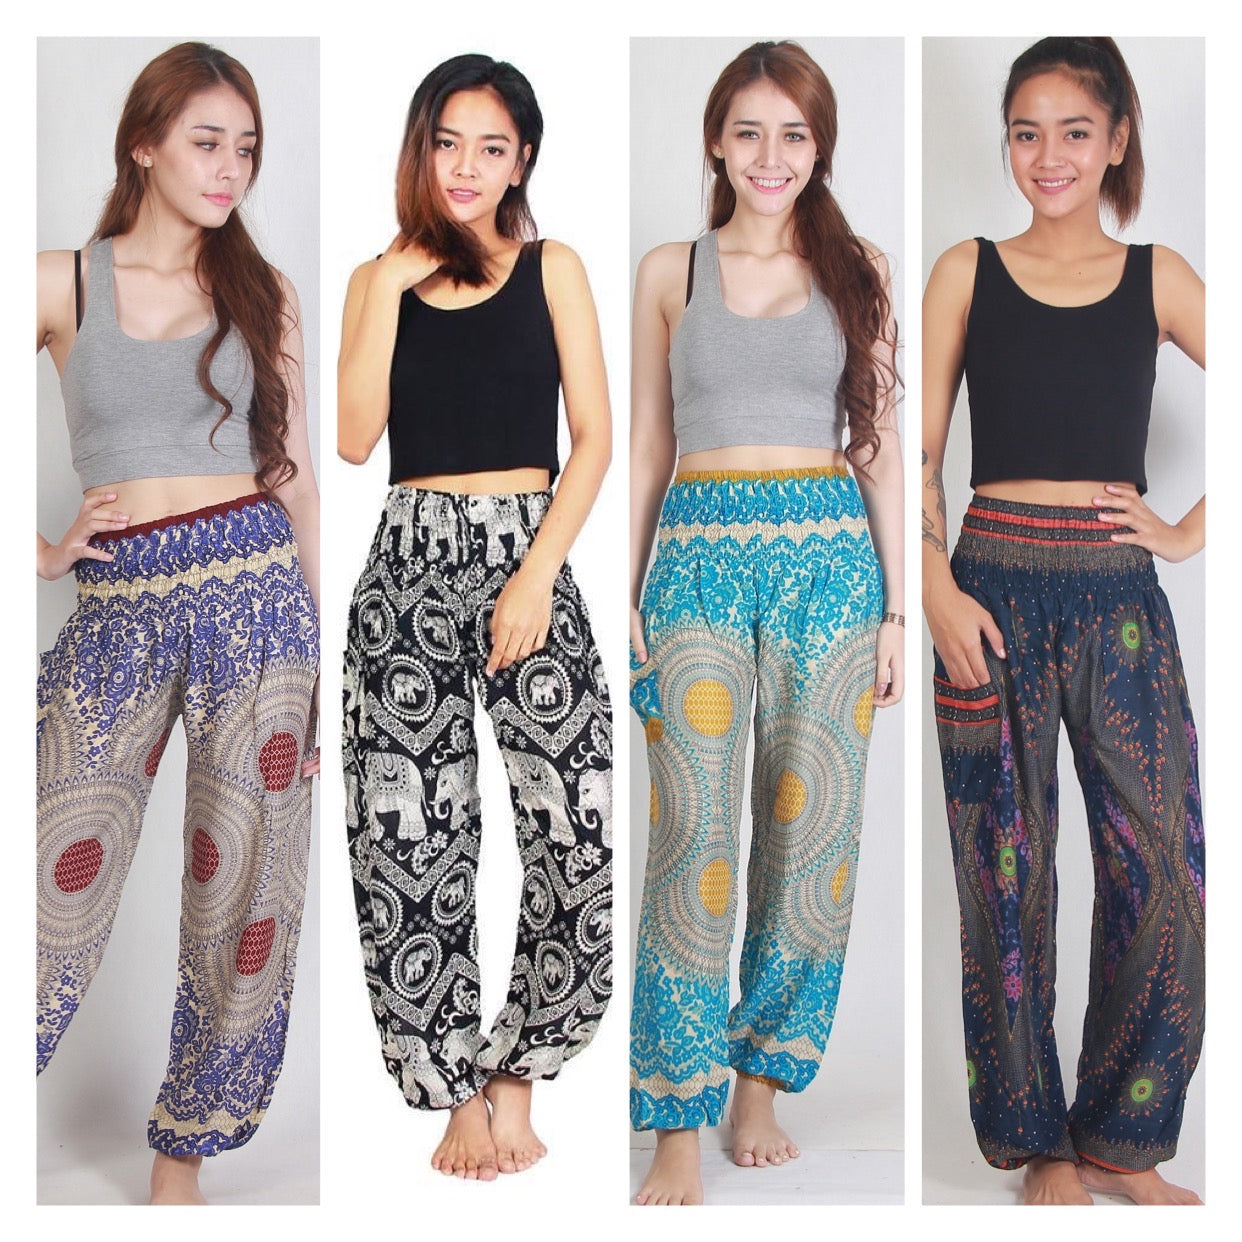 Boho-Chic Harem Yoga Pants